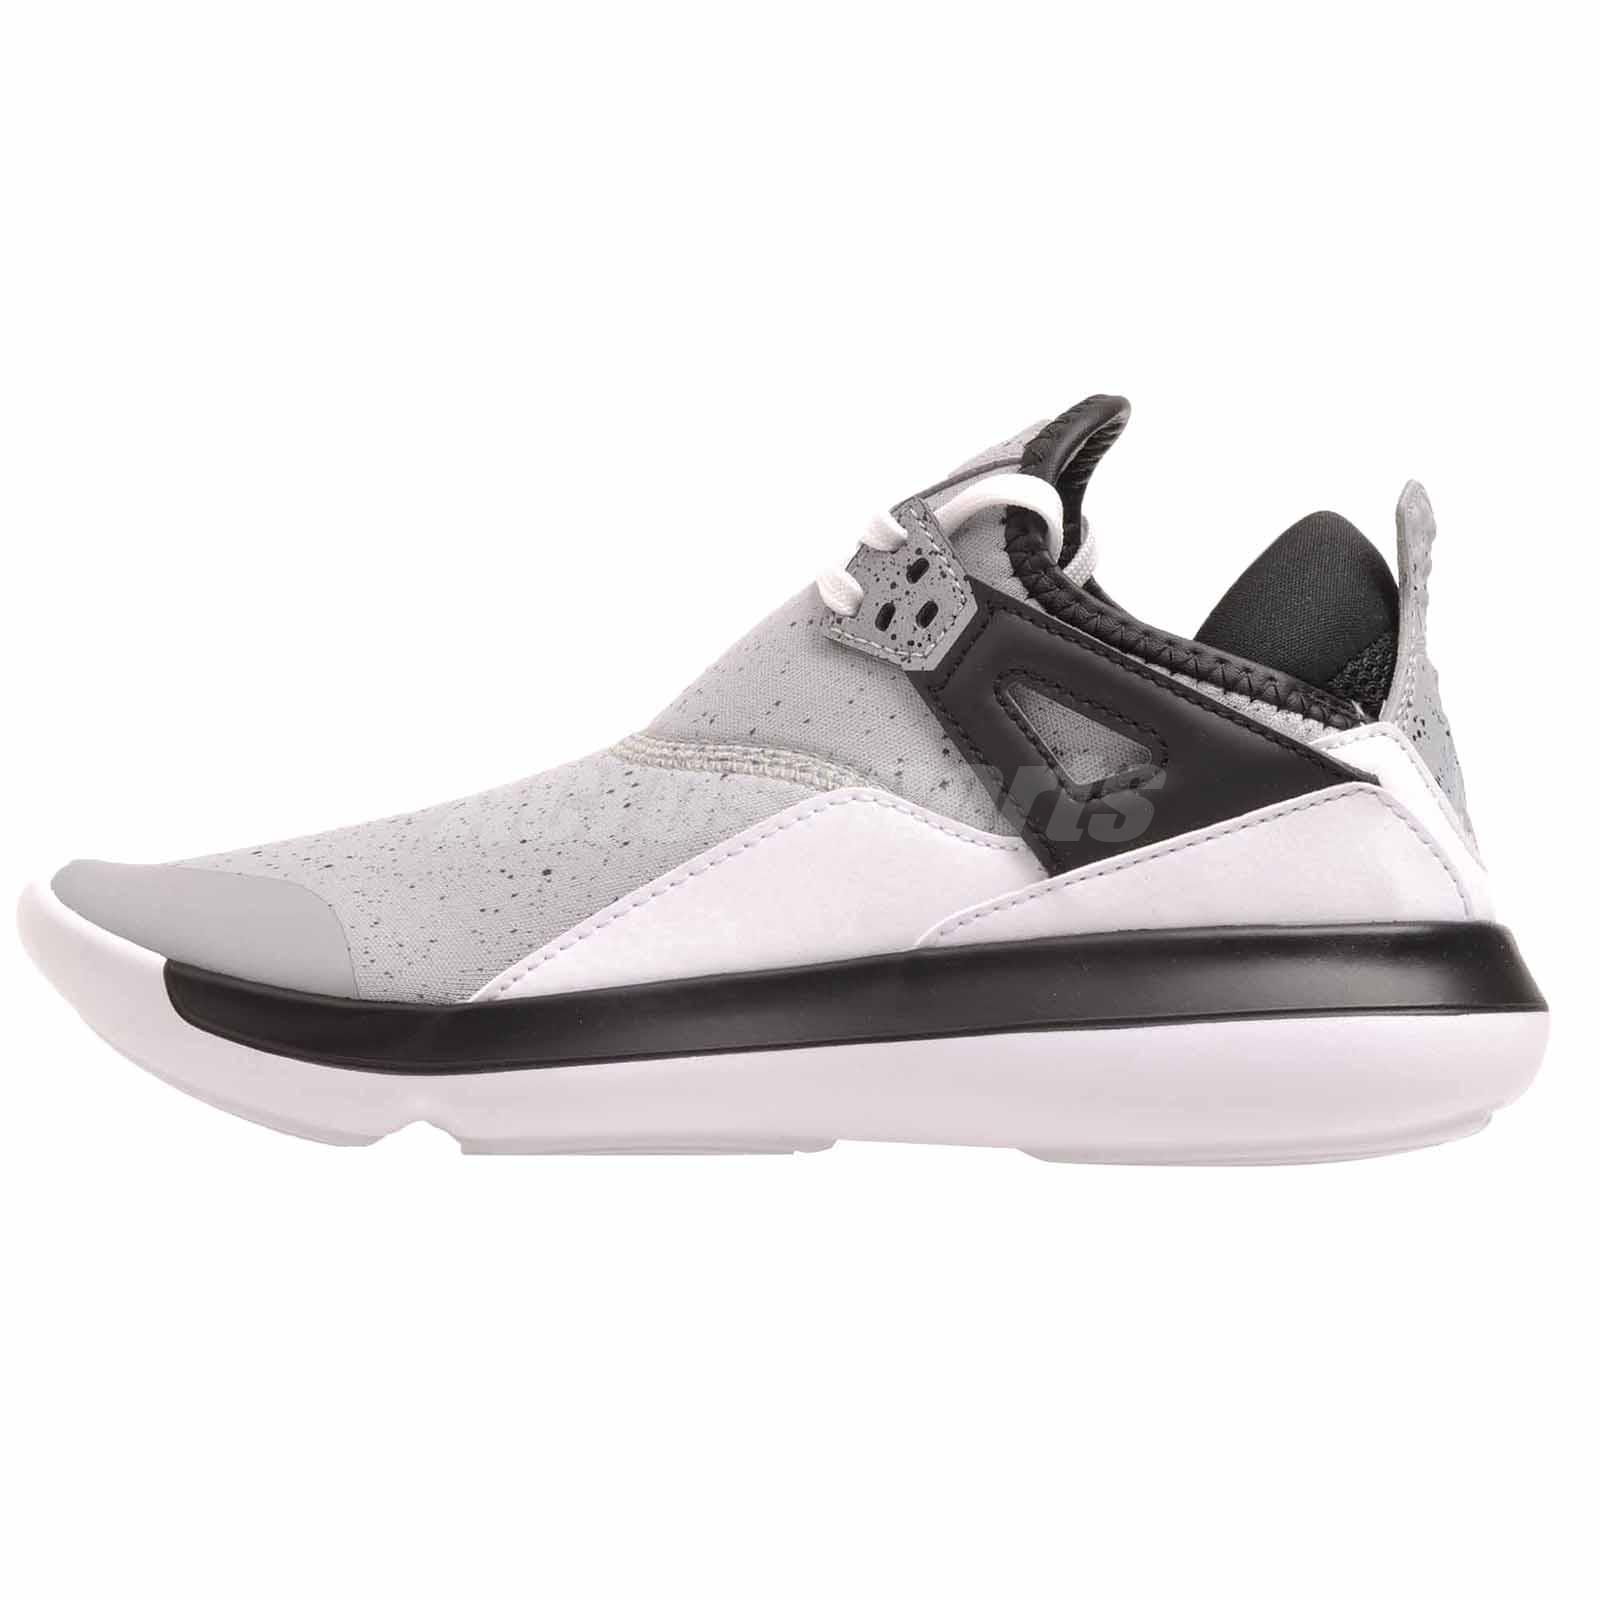 Nike Jordan Fly 89 BG Basketball Kids Youth Shoes Grey Air AA4039-013